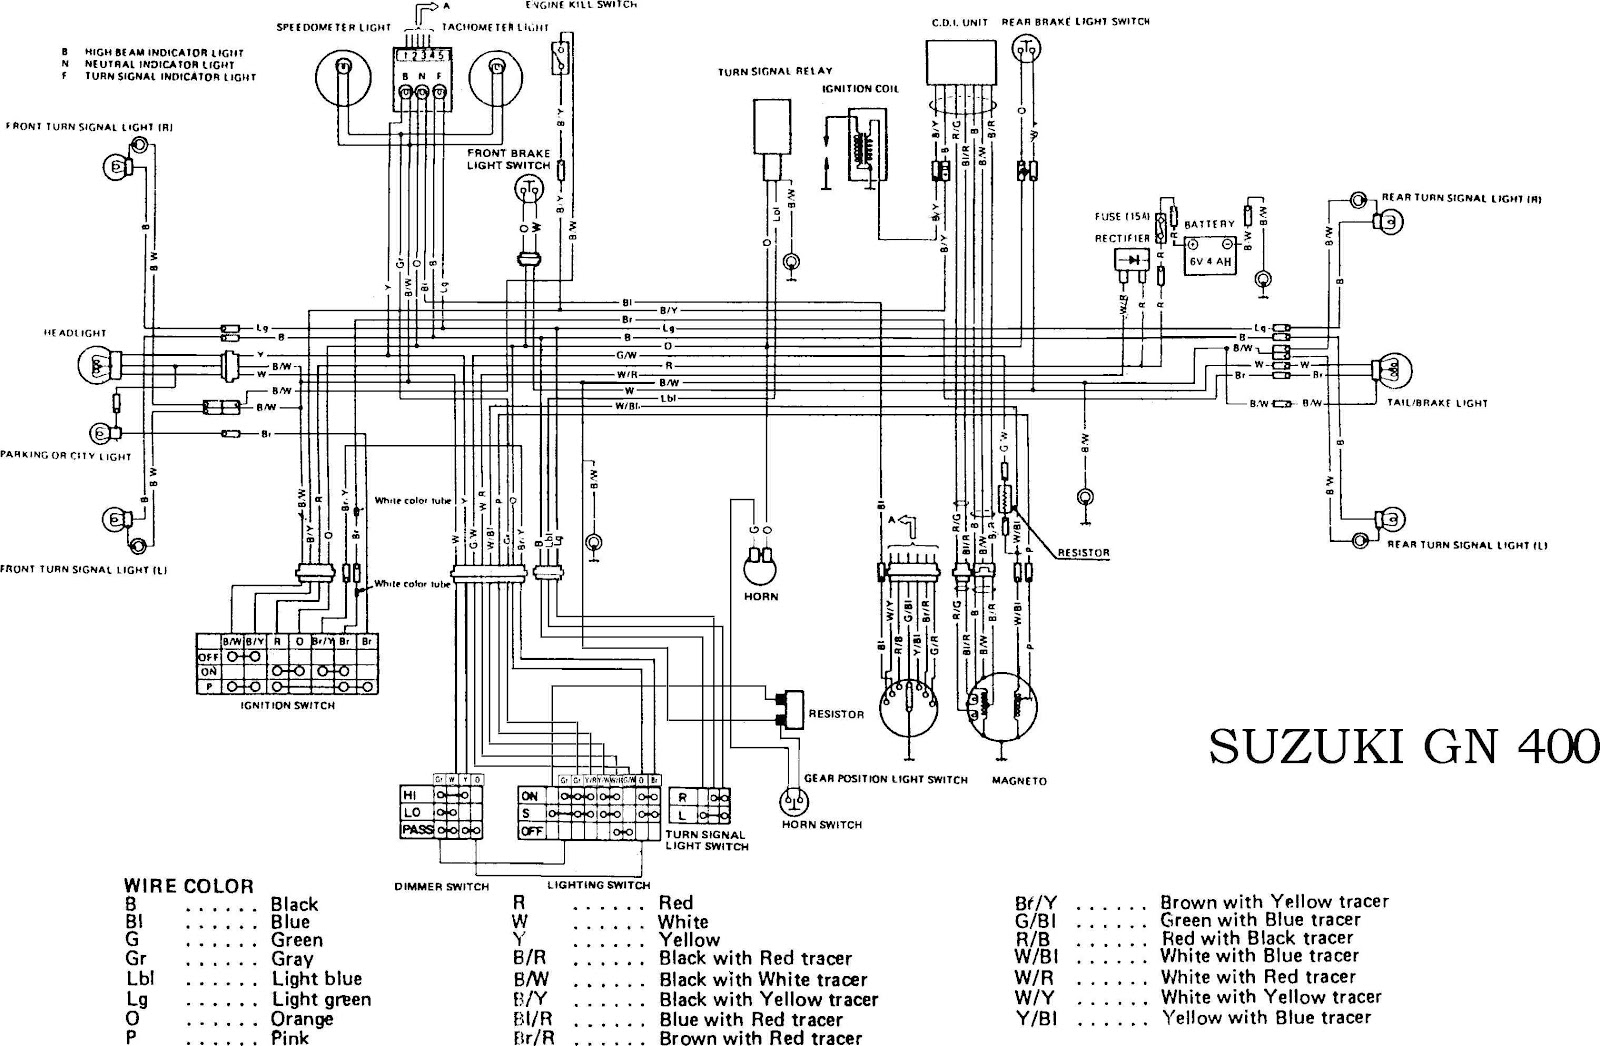 Wiring Diagram Suzuki Gsxr 600 1993 – The Wiring Diagram ...